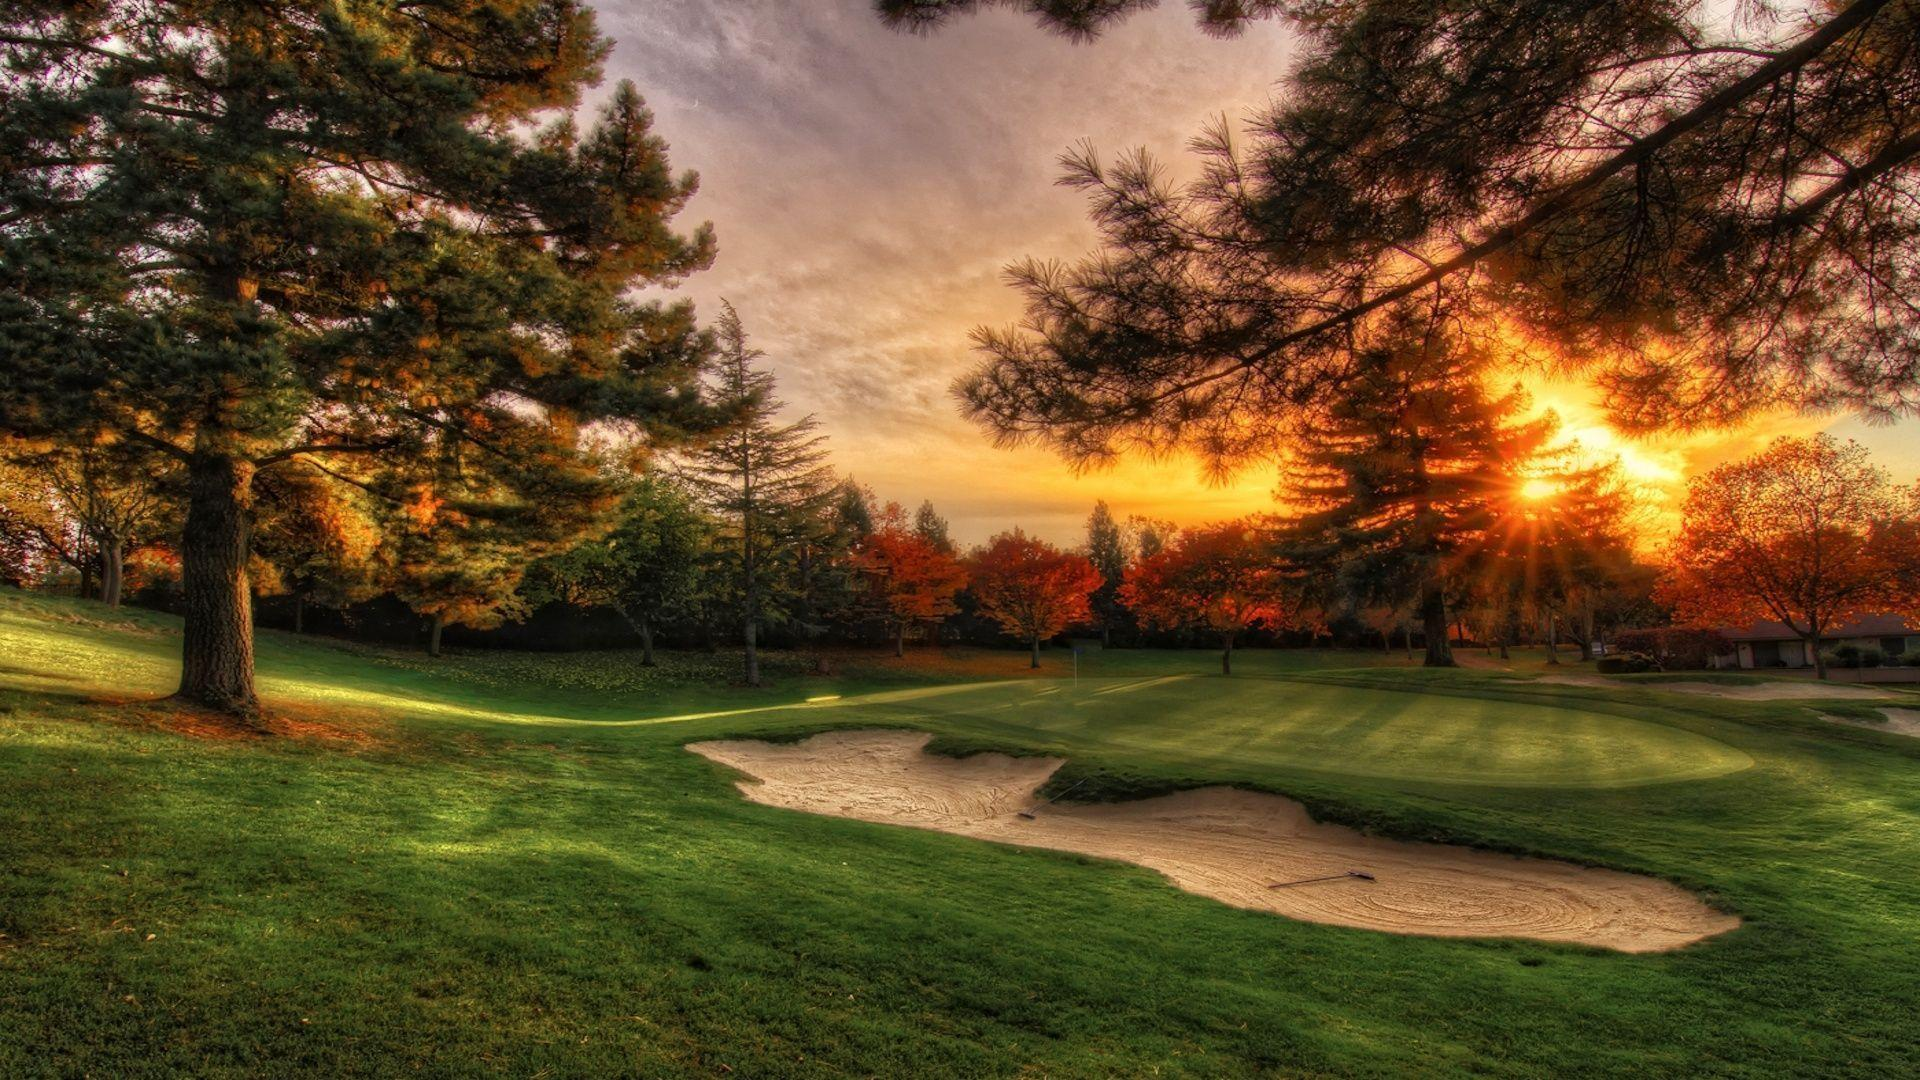 golf course hd wallpaper golf course pictures cool wallpapers a· download